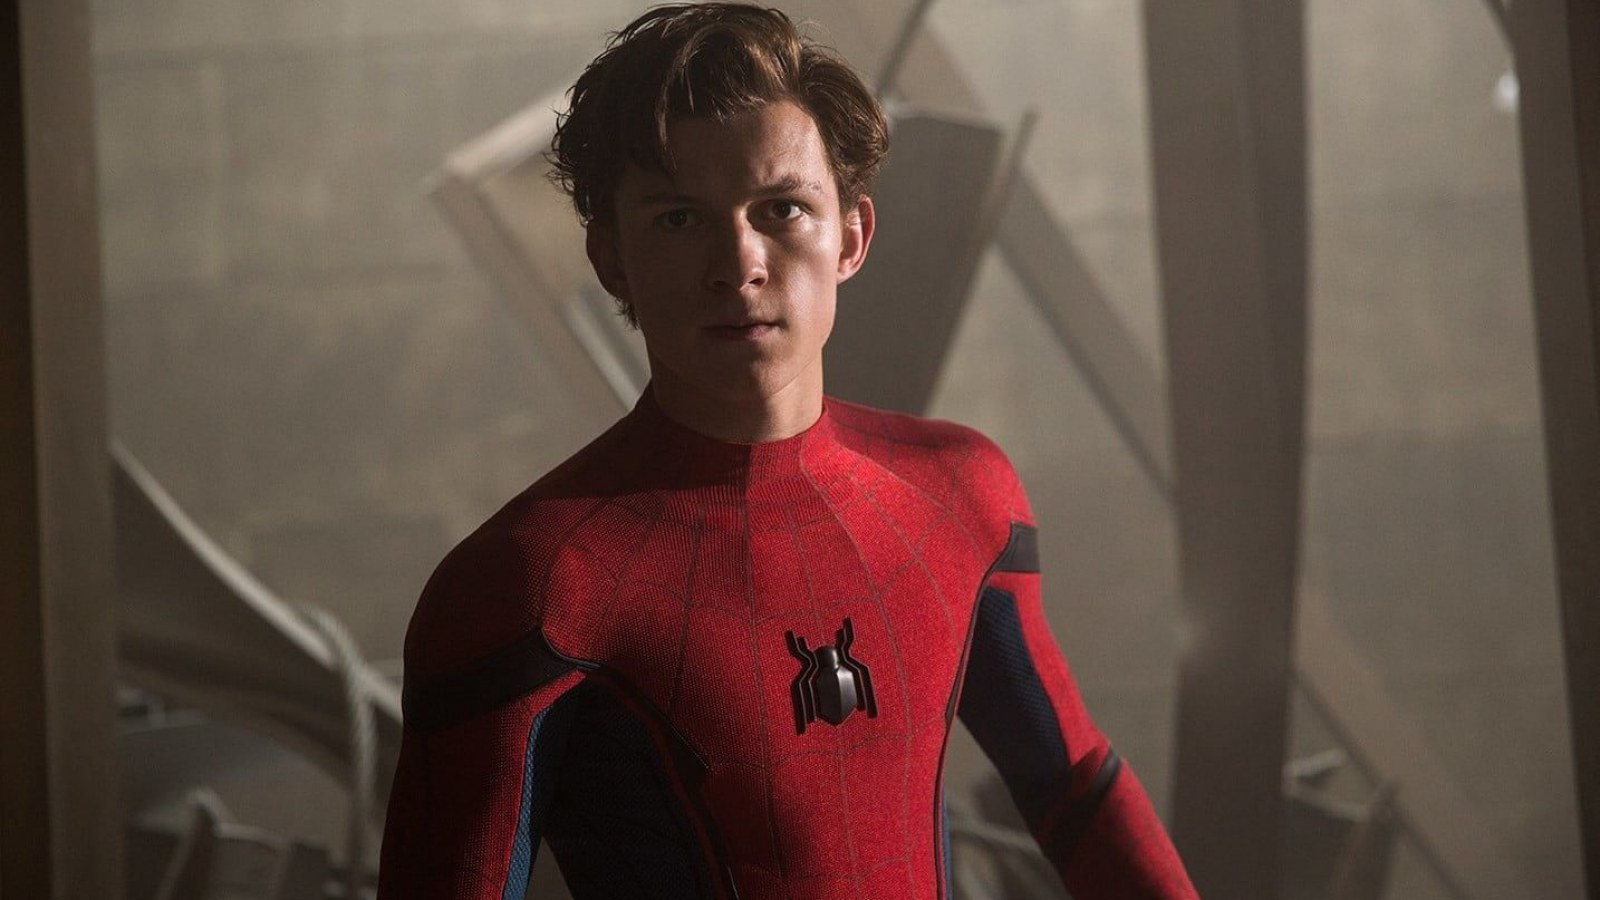 Spider-Man Returns in 'Avengers: Endgame,' But Is Death Preferable